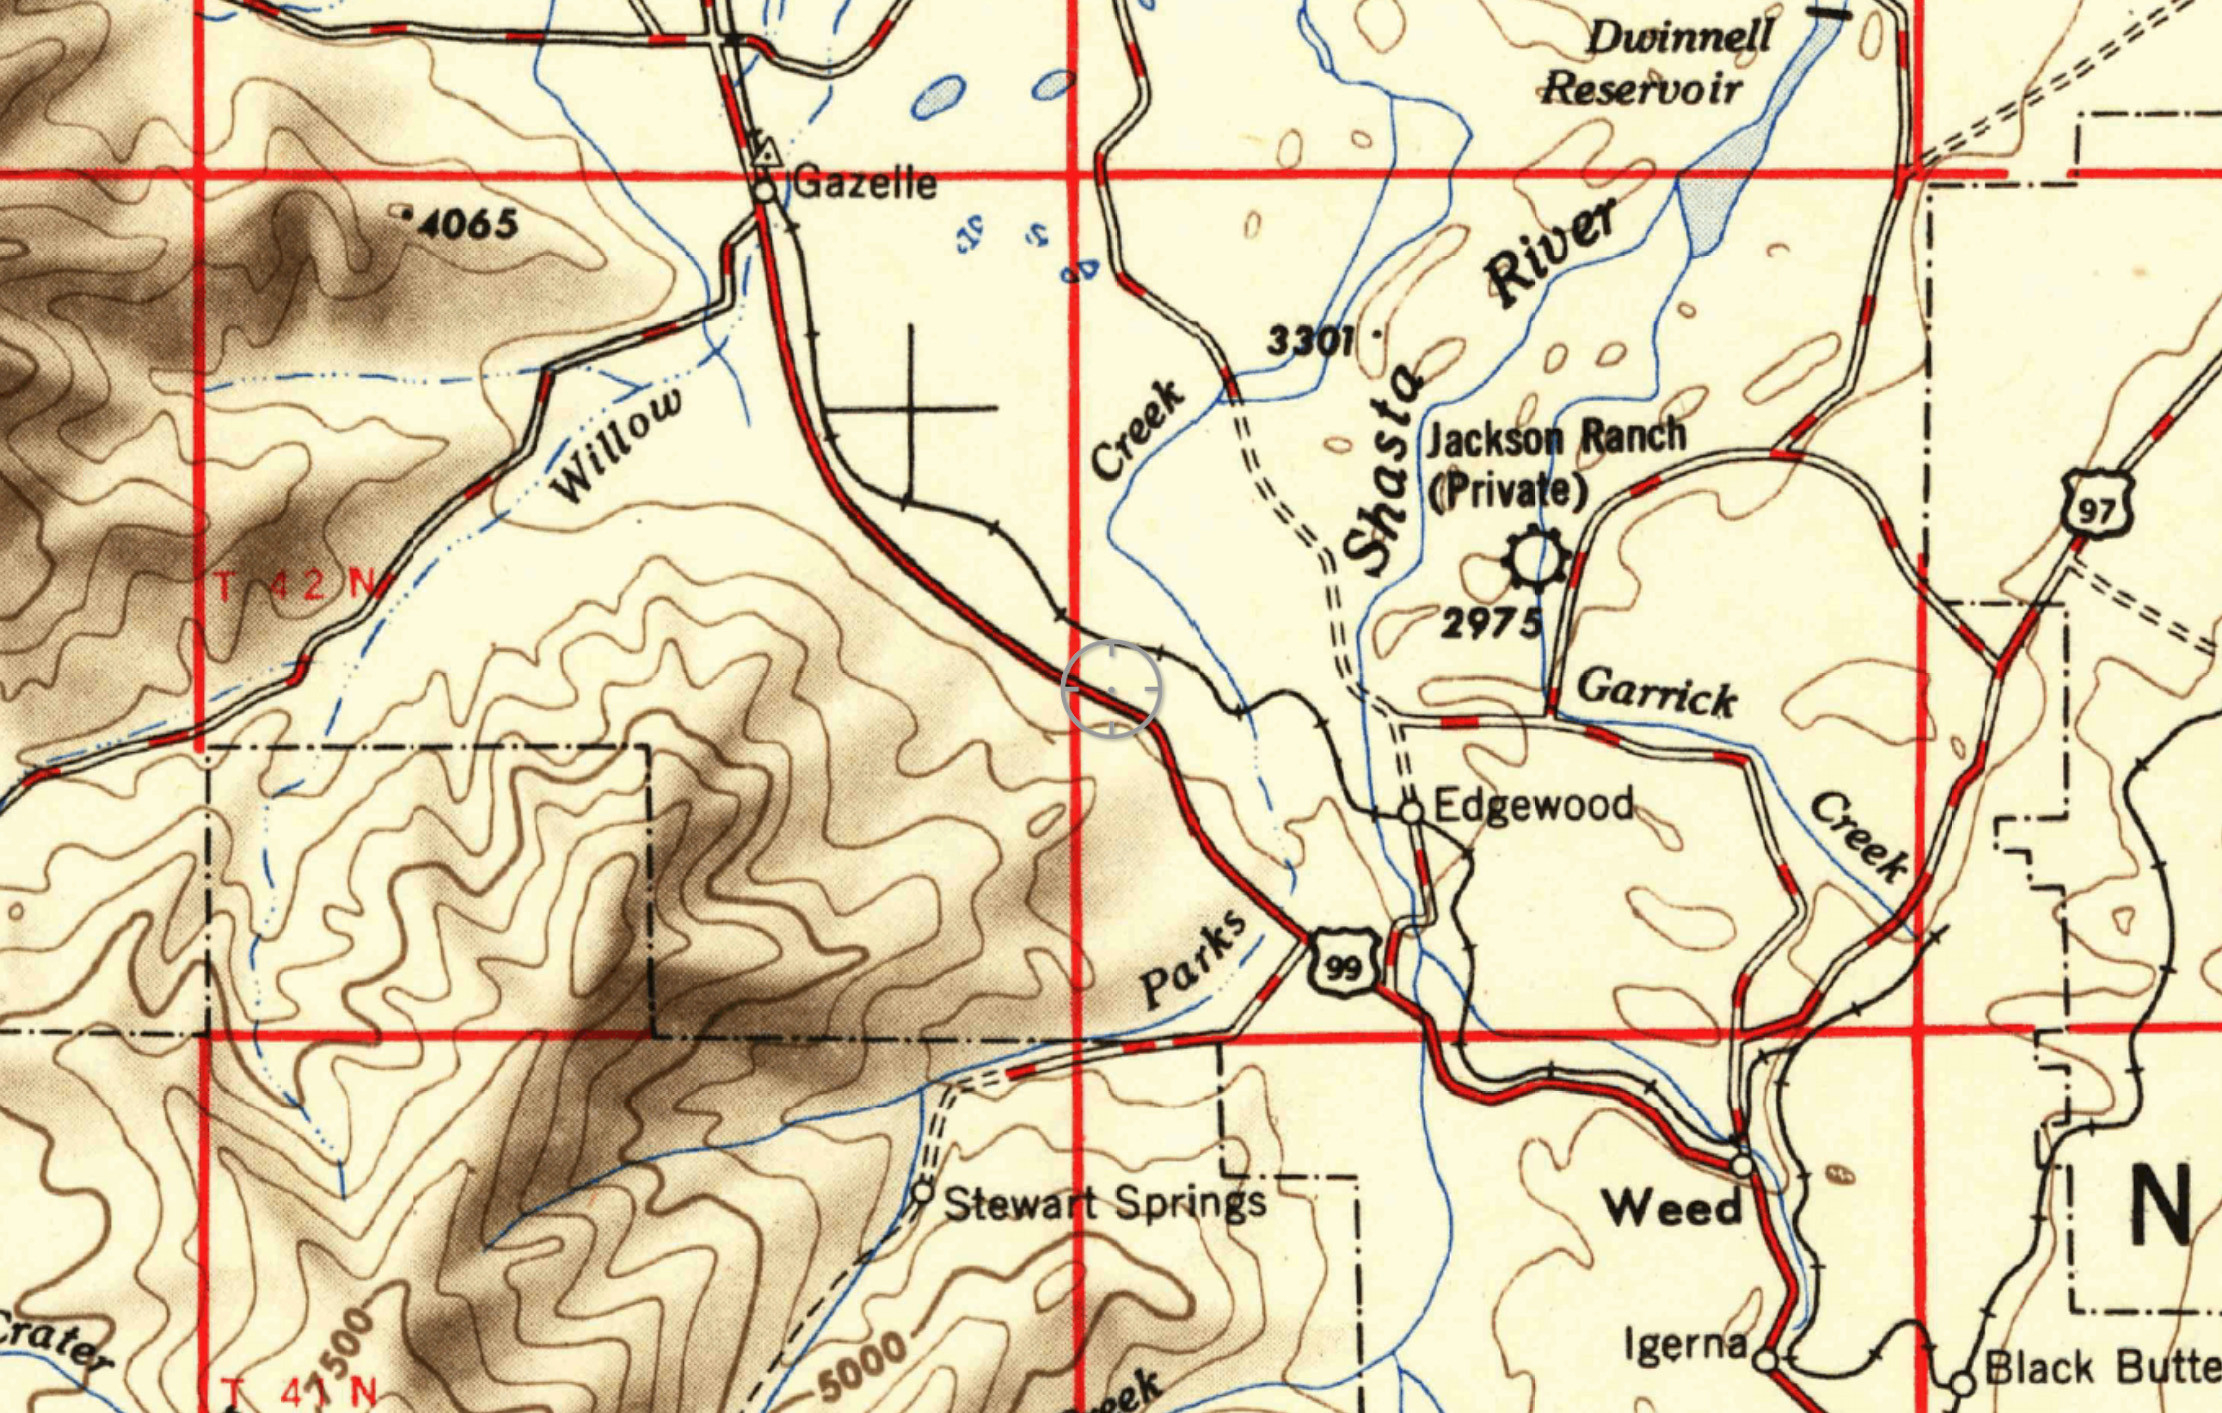 Abandoned Mines California Map Outline Abandoned Mines California - Map Of Abandoned Mines In California